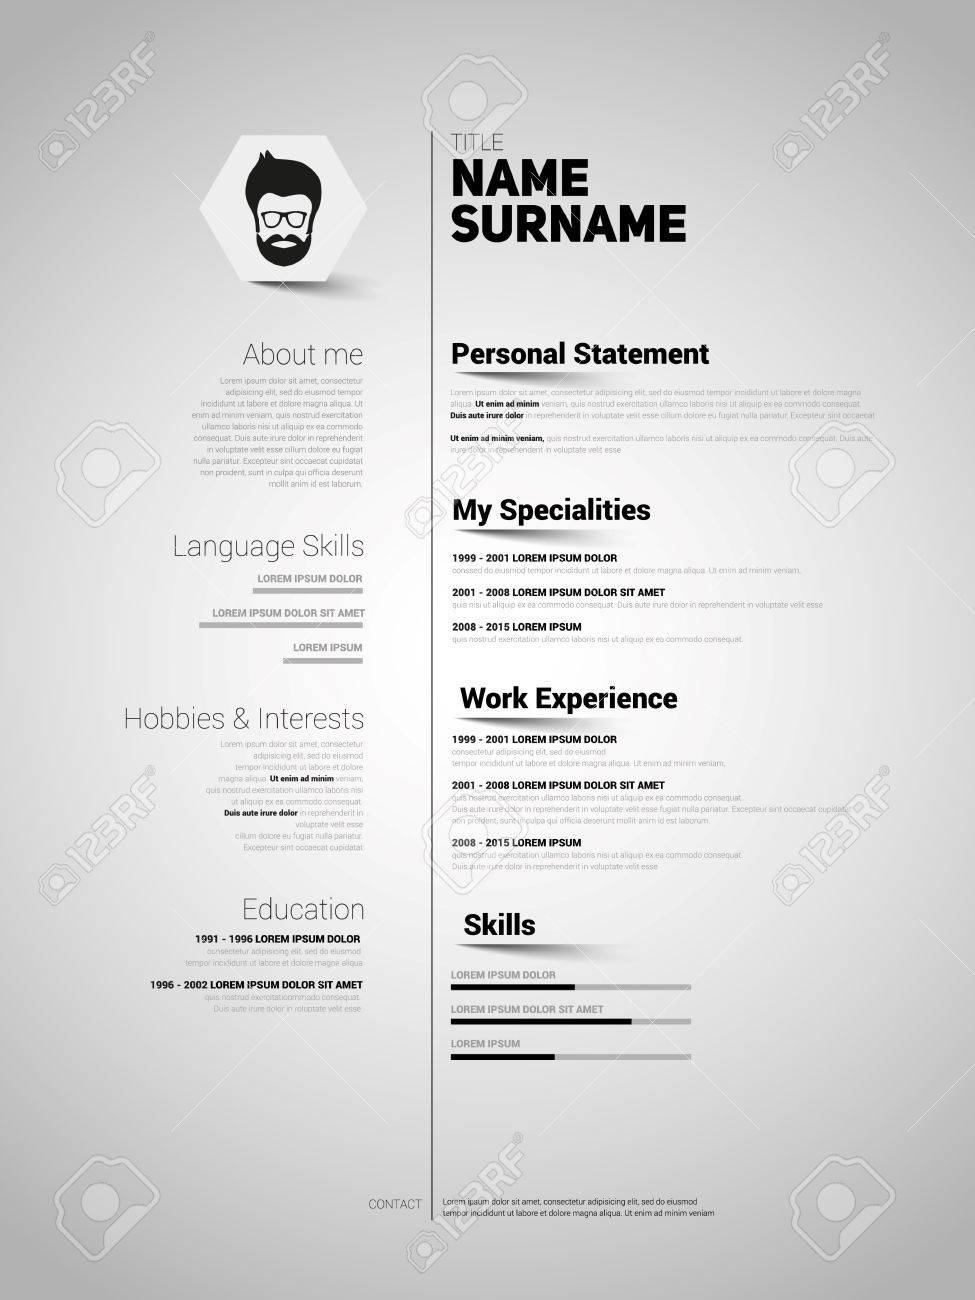 resume Resume Simple minimalist cv resume template with simple design vector royalty stock 44832776